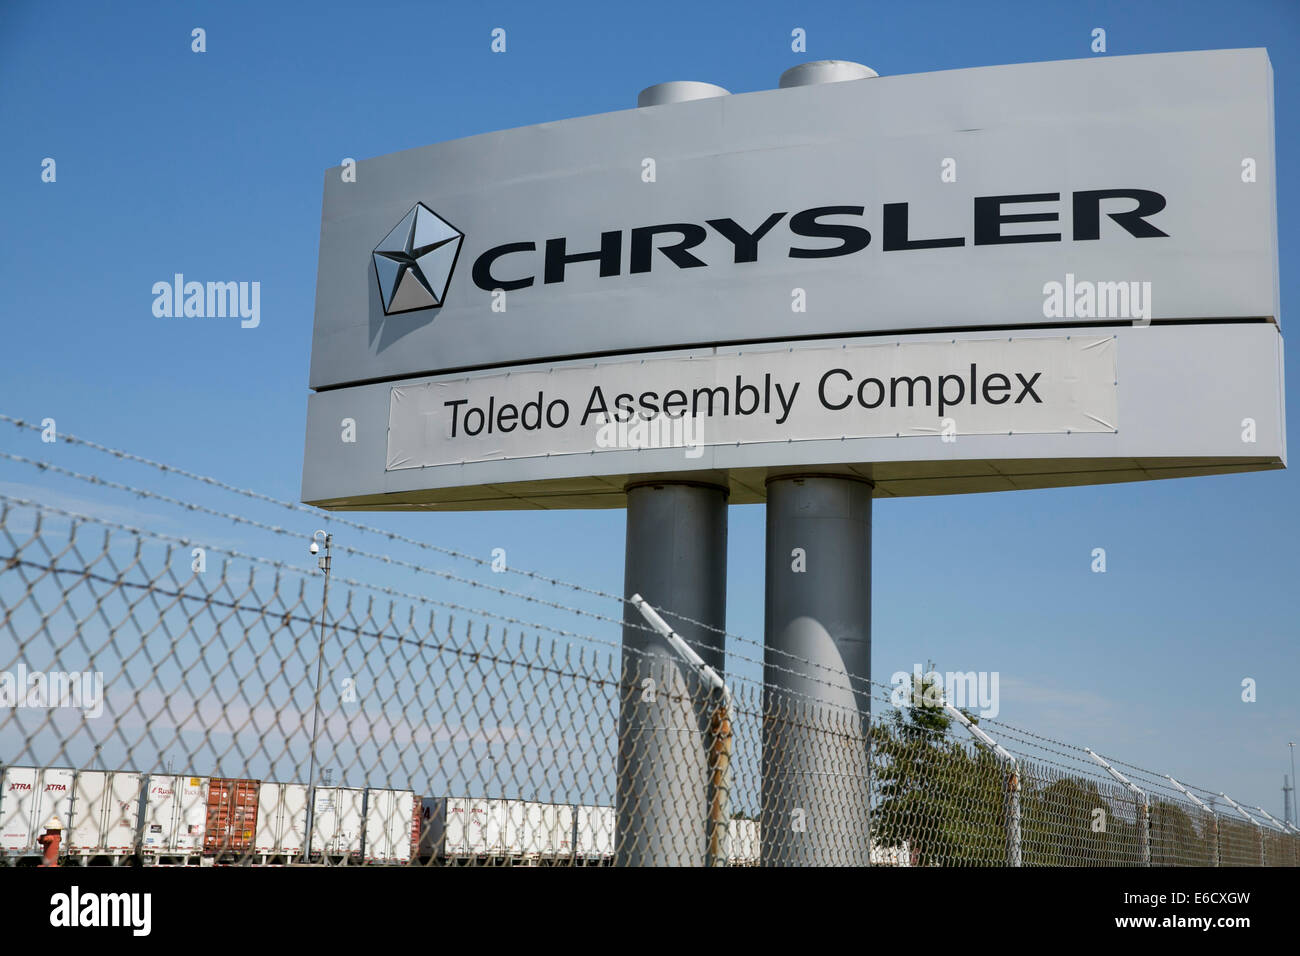 The Chrysler Toledo Assembly Complex in Toledo, Ohio. The manufacturing site of Jeep vehicles. - Stock Image